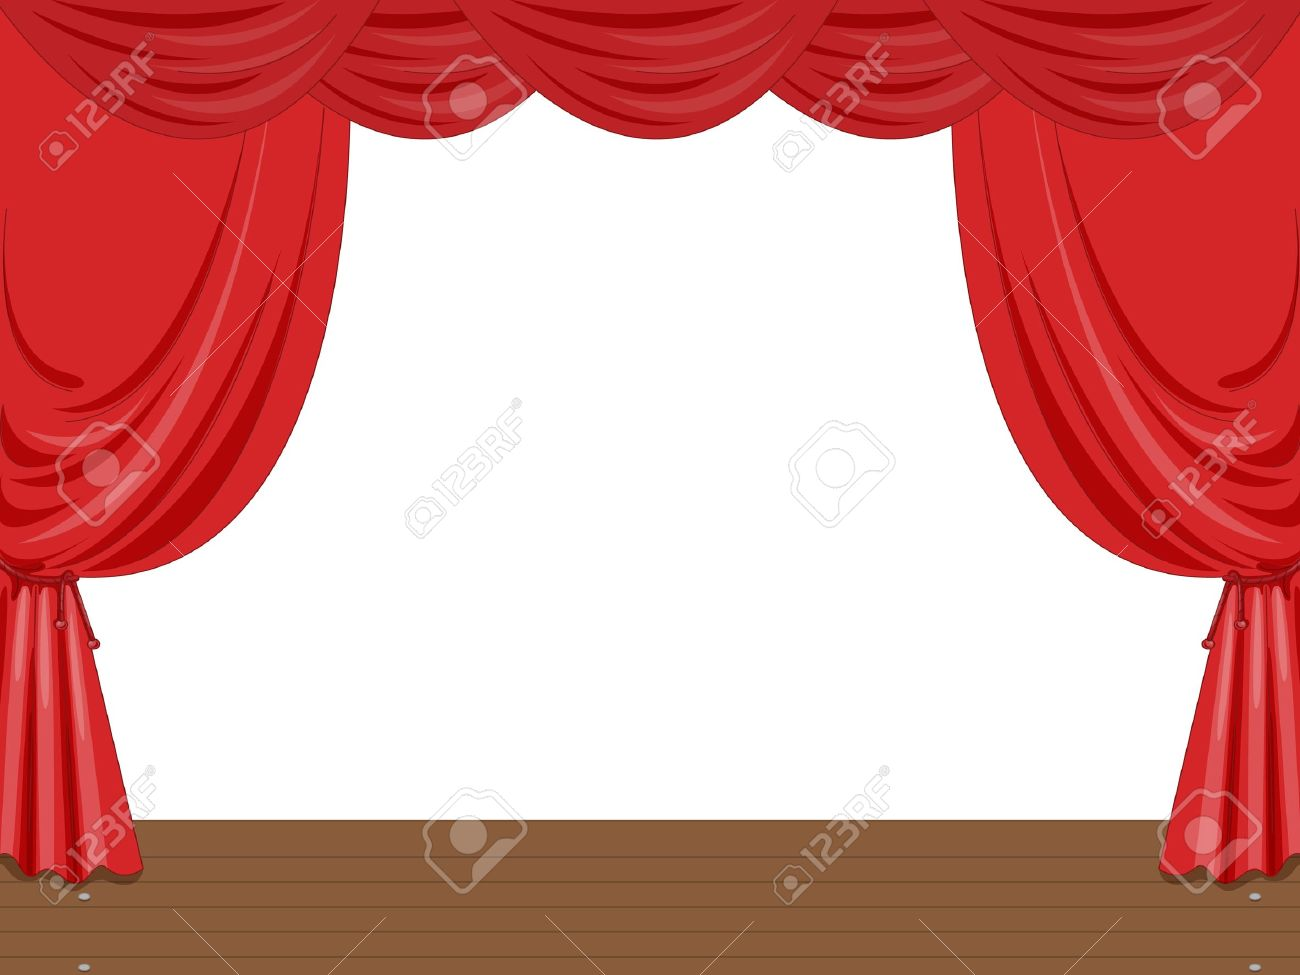 Empty stage illustration with curtains Stock Vector - 13233374